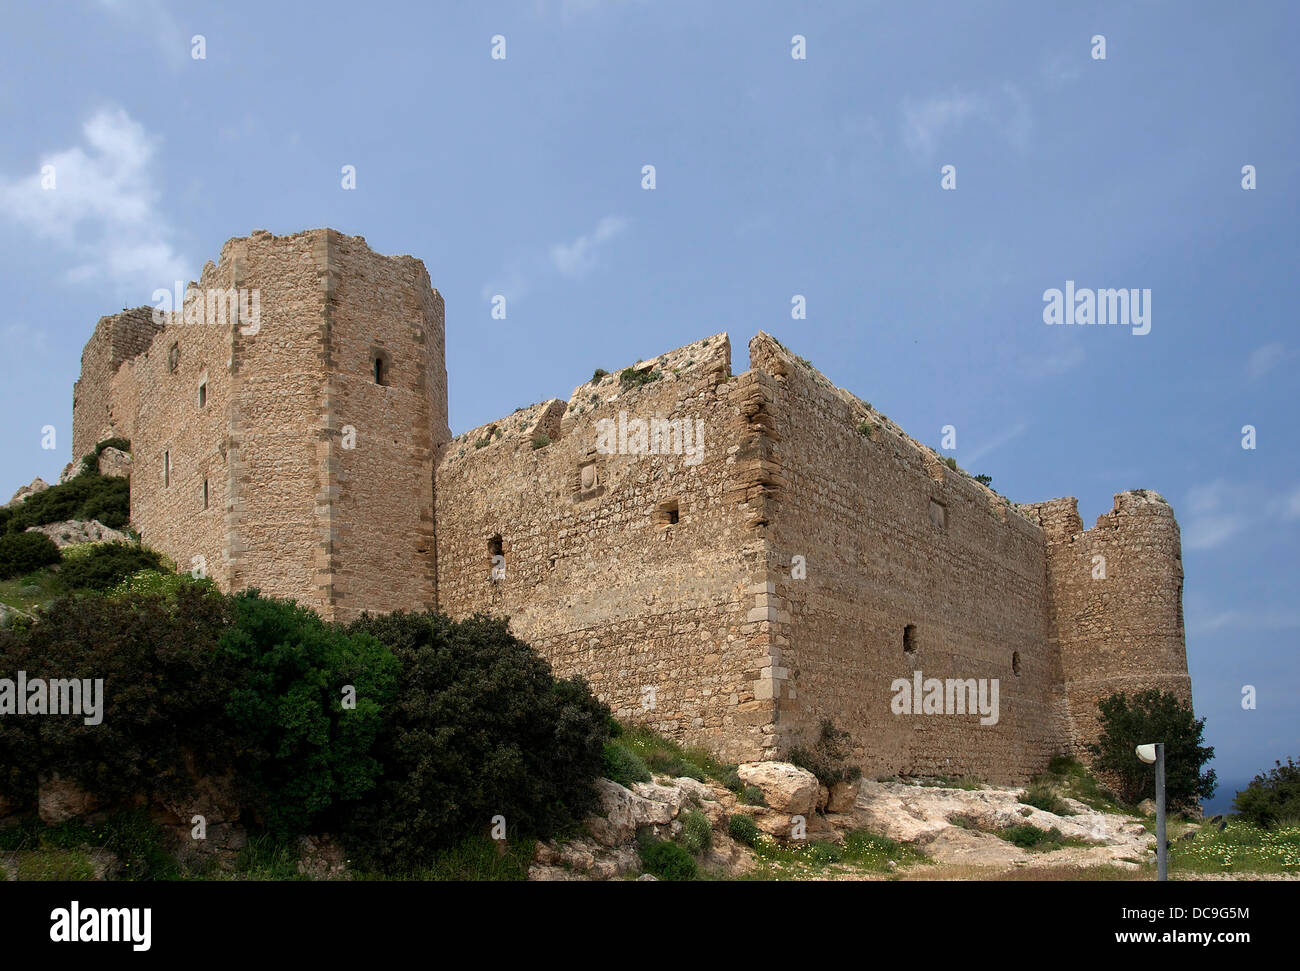 castle of Kastelos, 14th century, island of Rhodes, Greece. - Stock Image